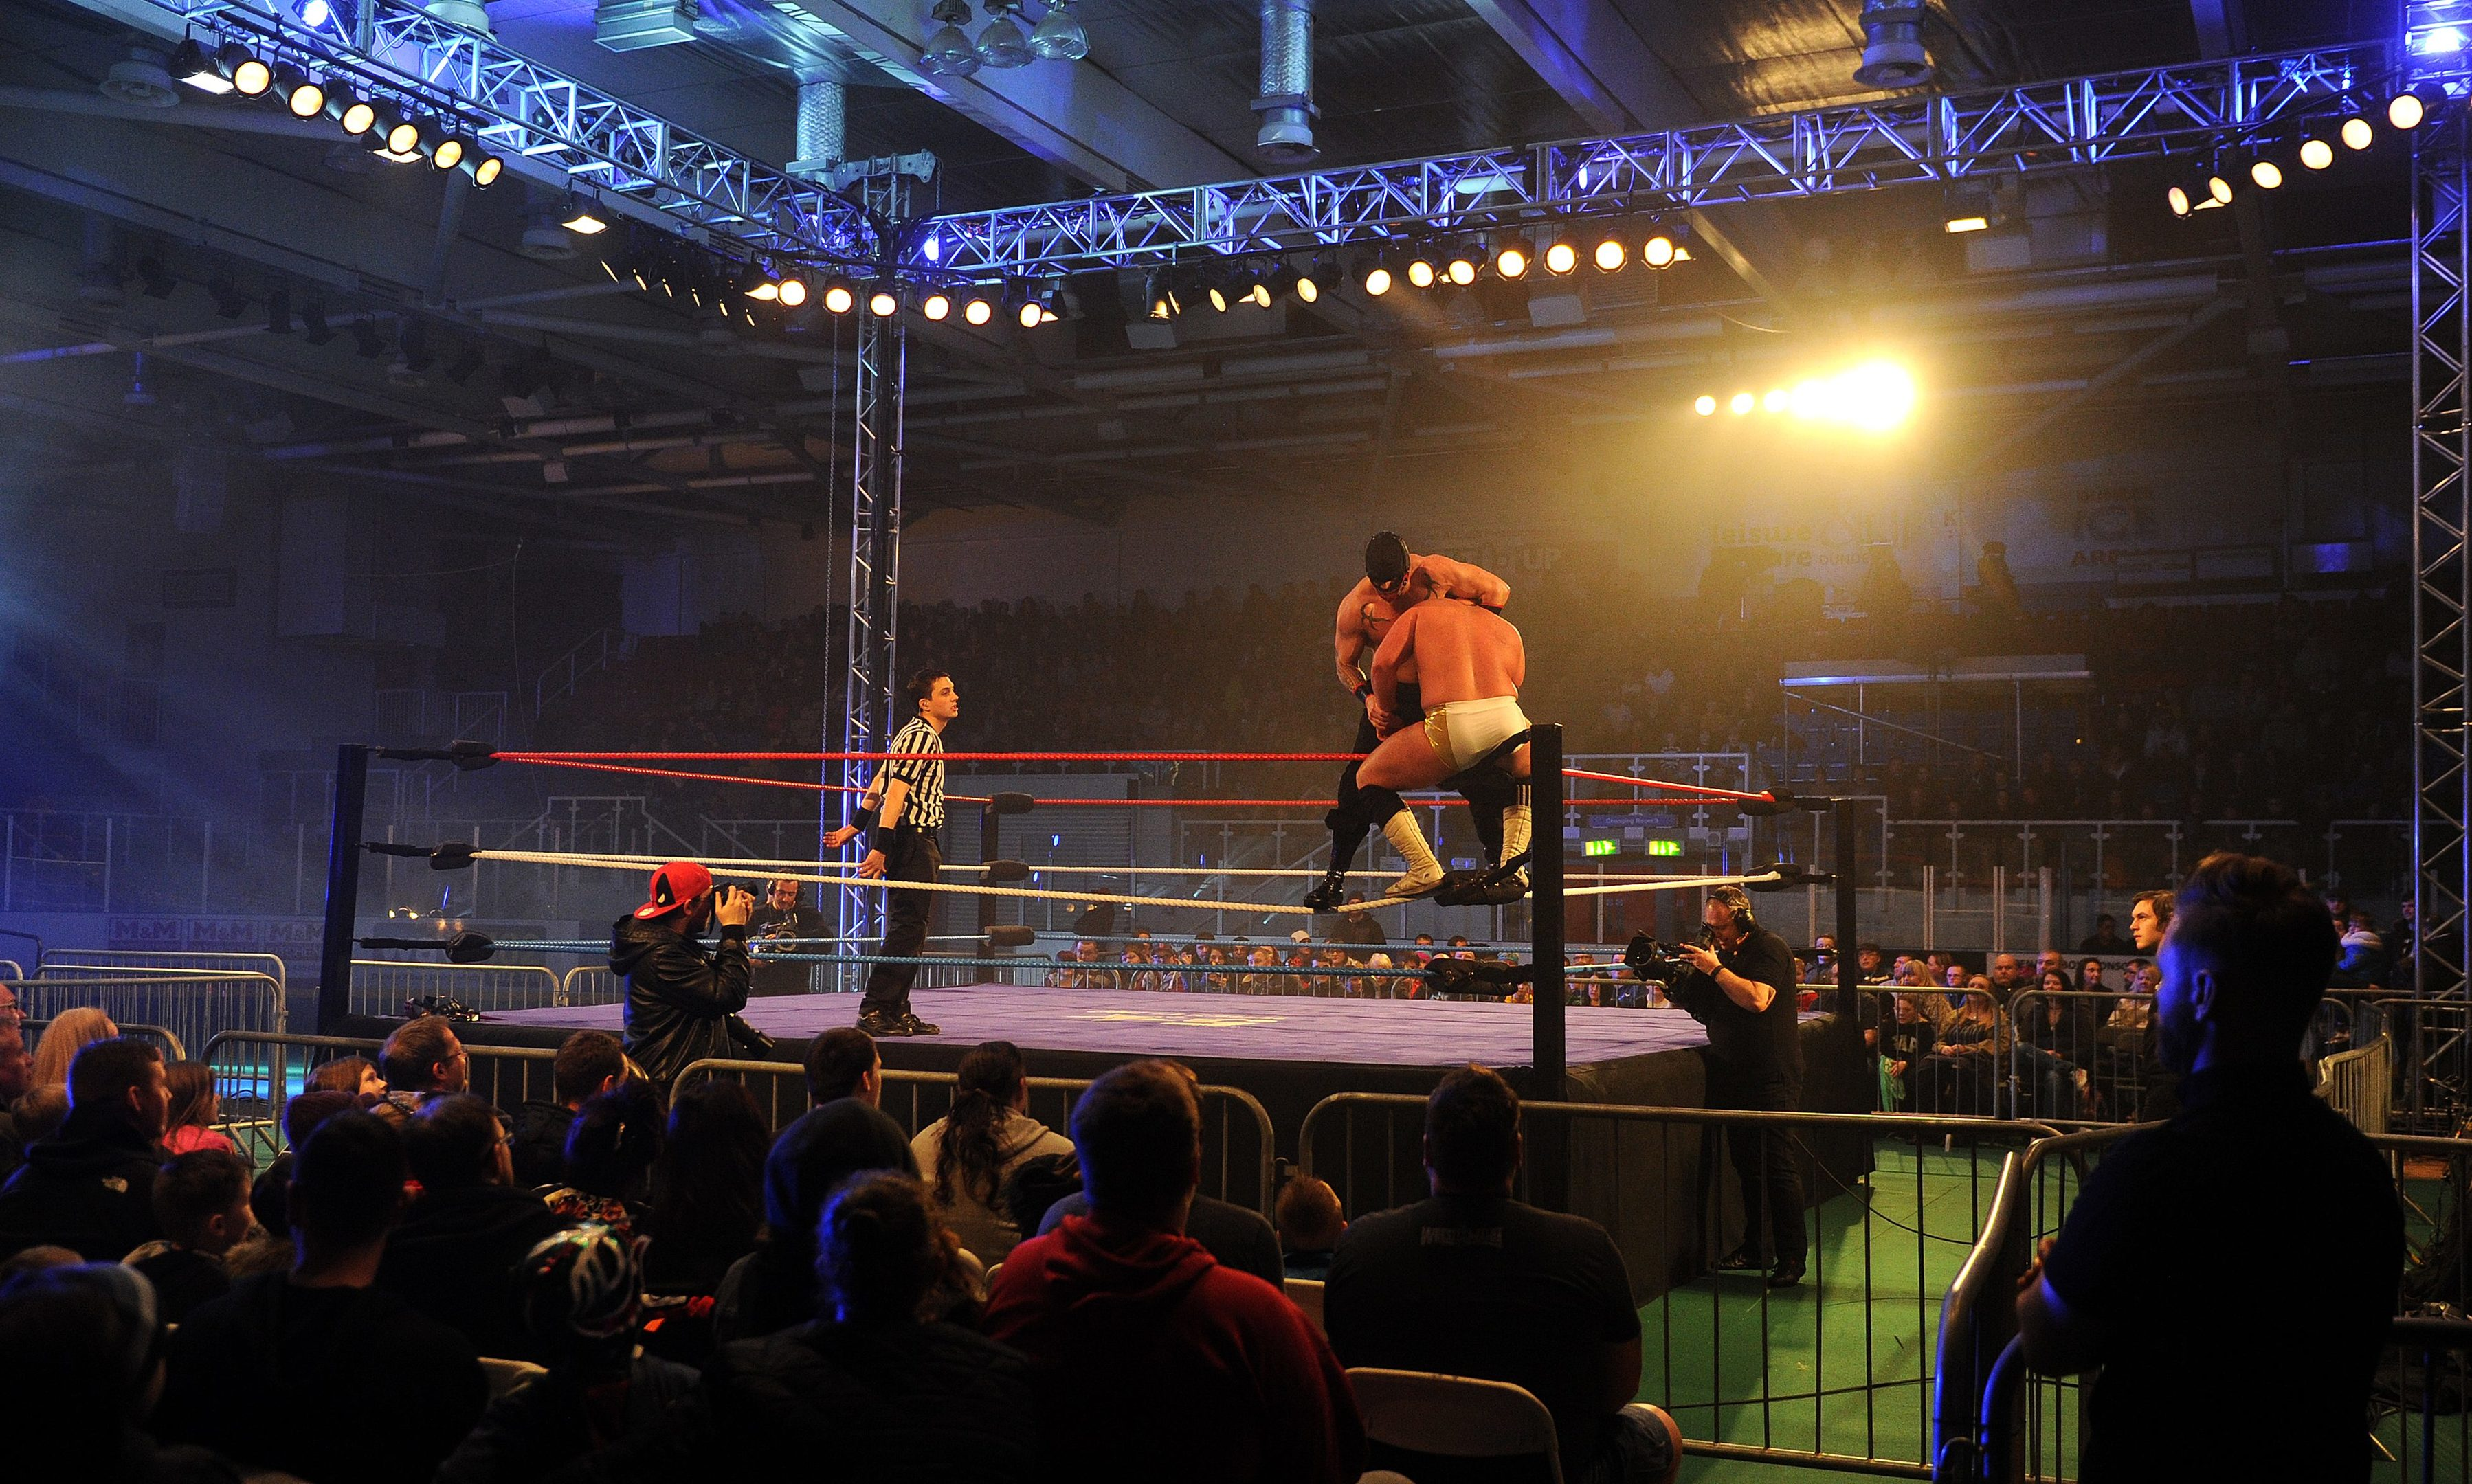 Wrestling promoters 5 Star lured 2,000 fans to a show at Dundee Ice Arena in January